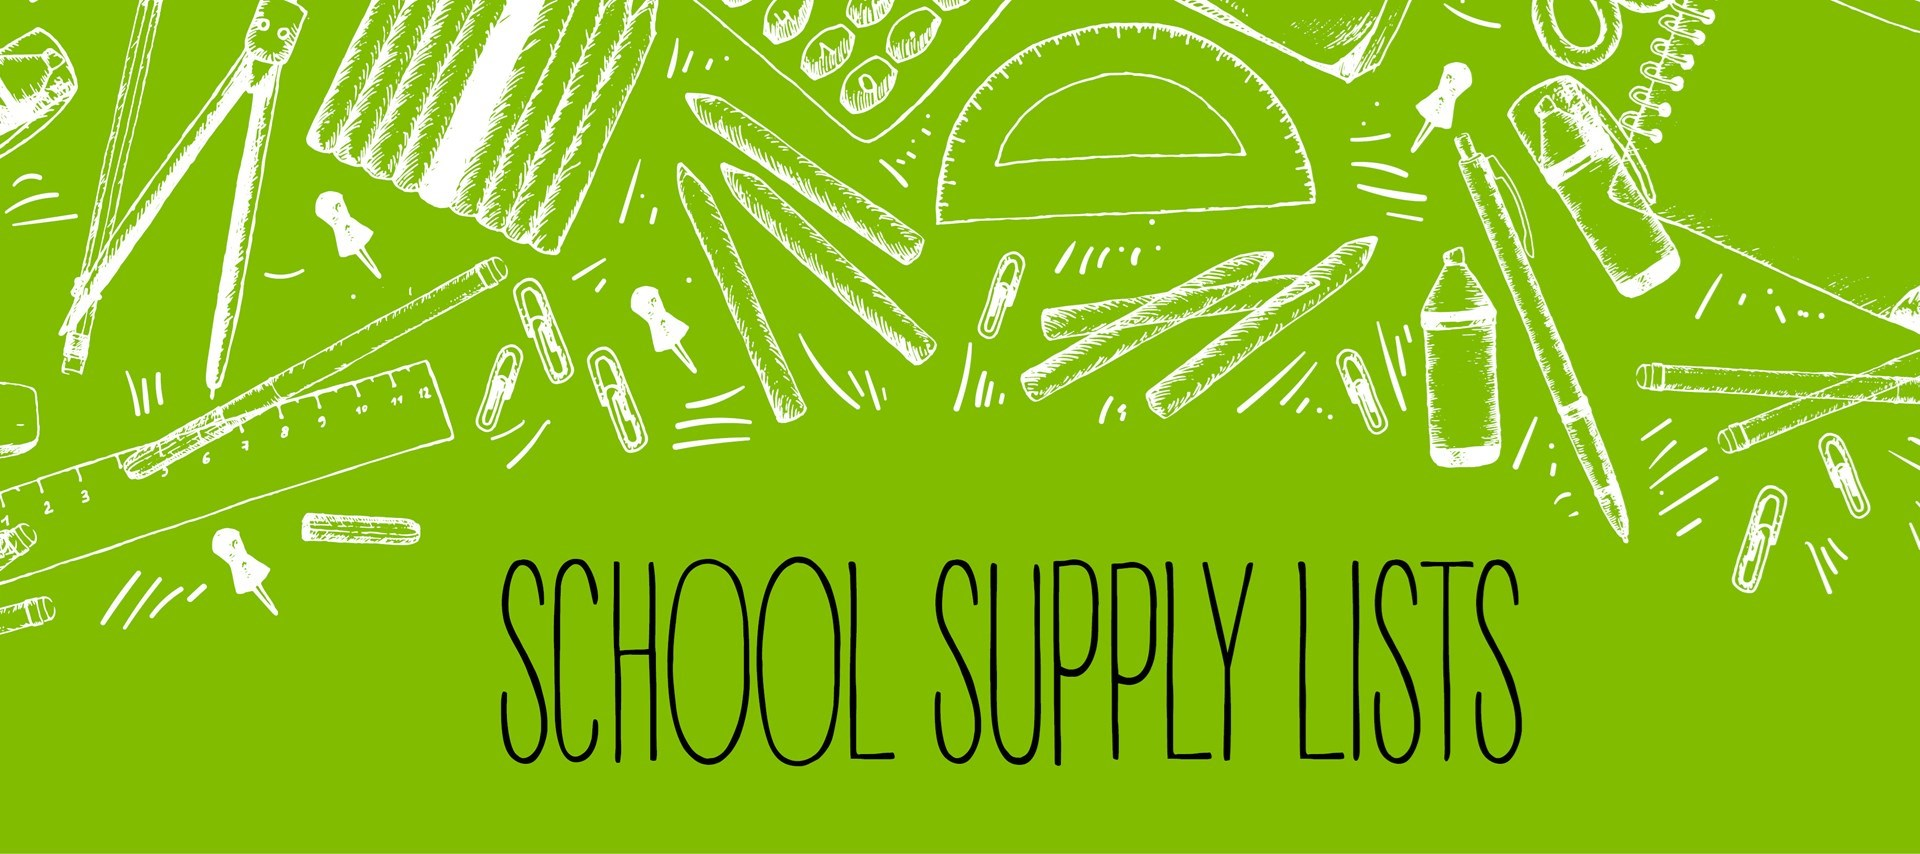 École Henry Kelsey School Supply List